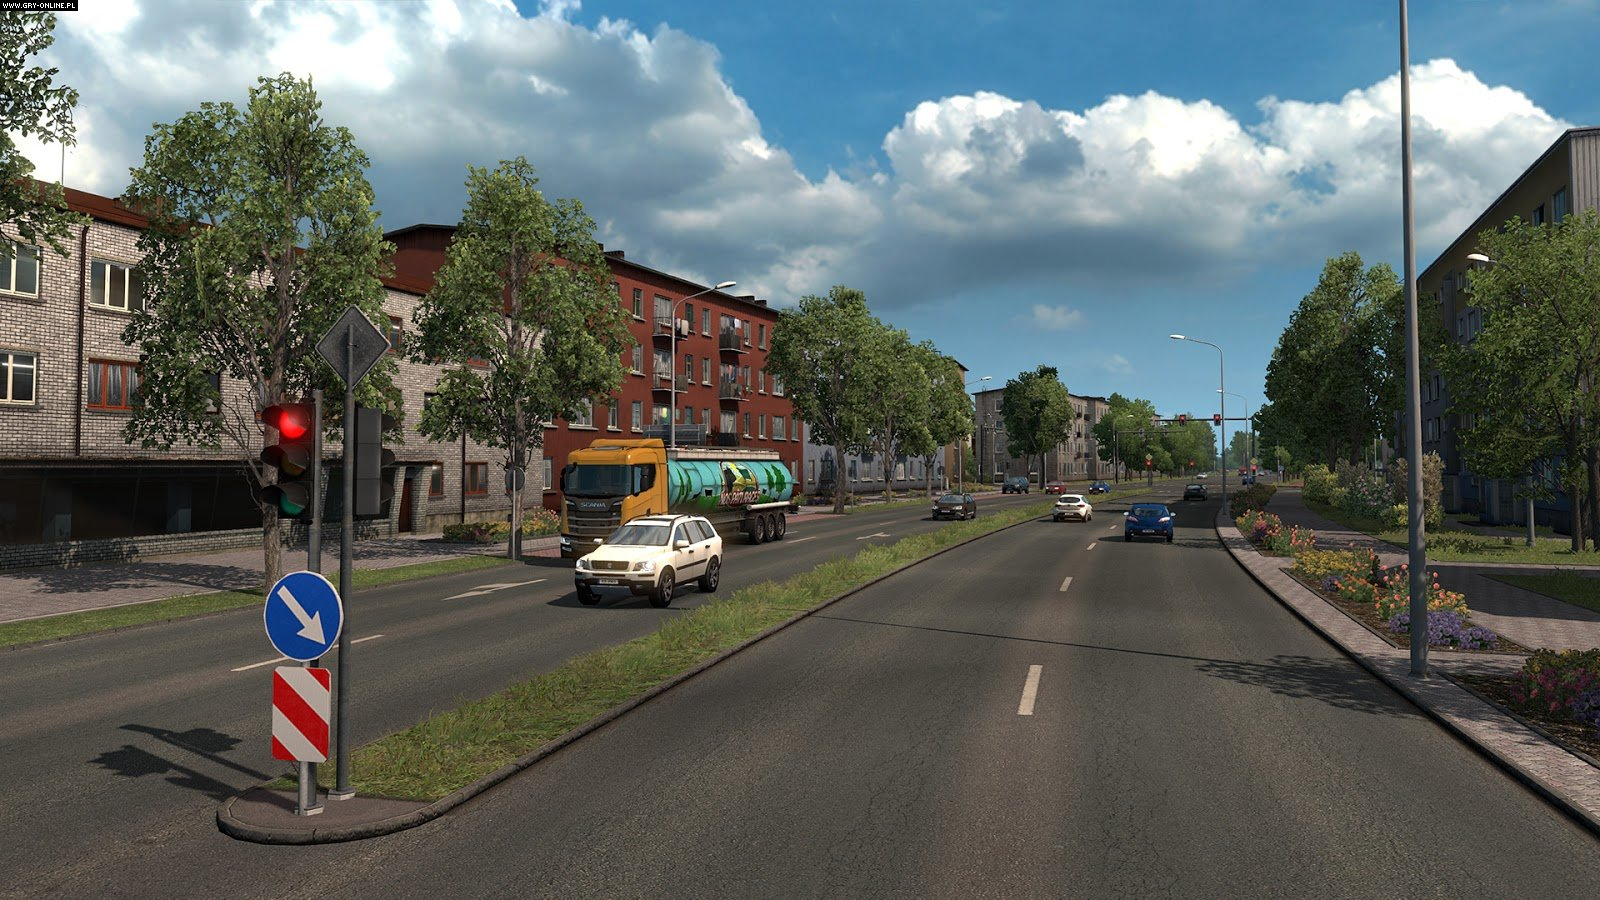 Euro Truck Simulator 2: Beyond the Baltic Sea PC Games Image 3/20, SCS Software